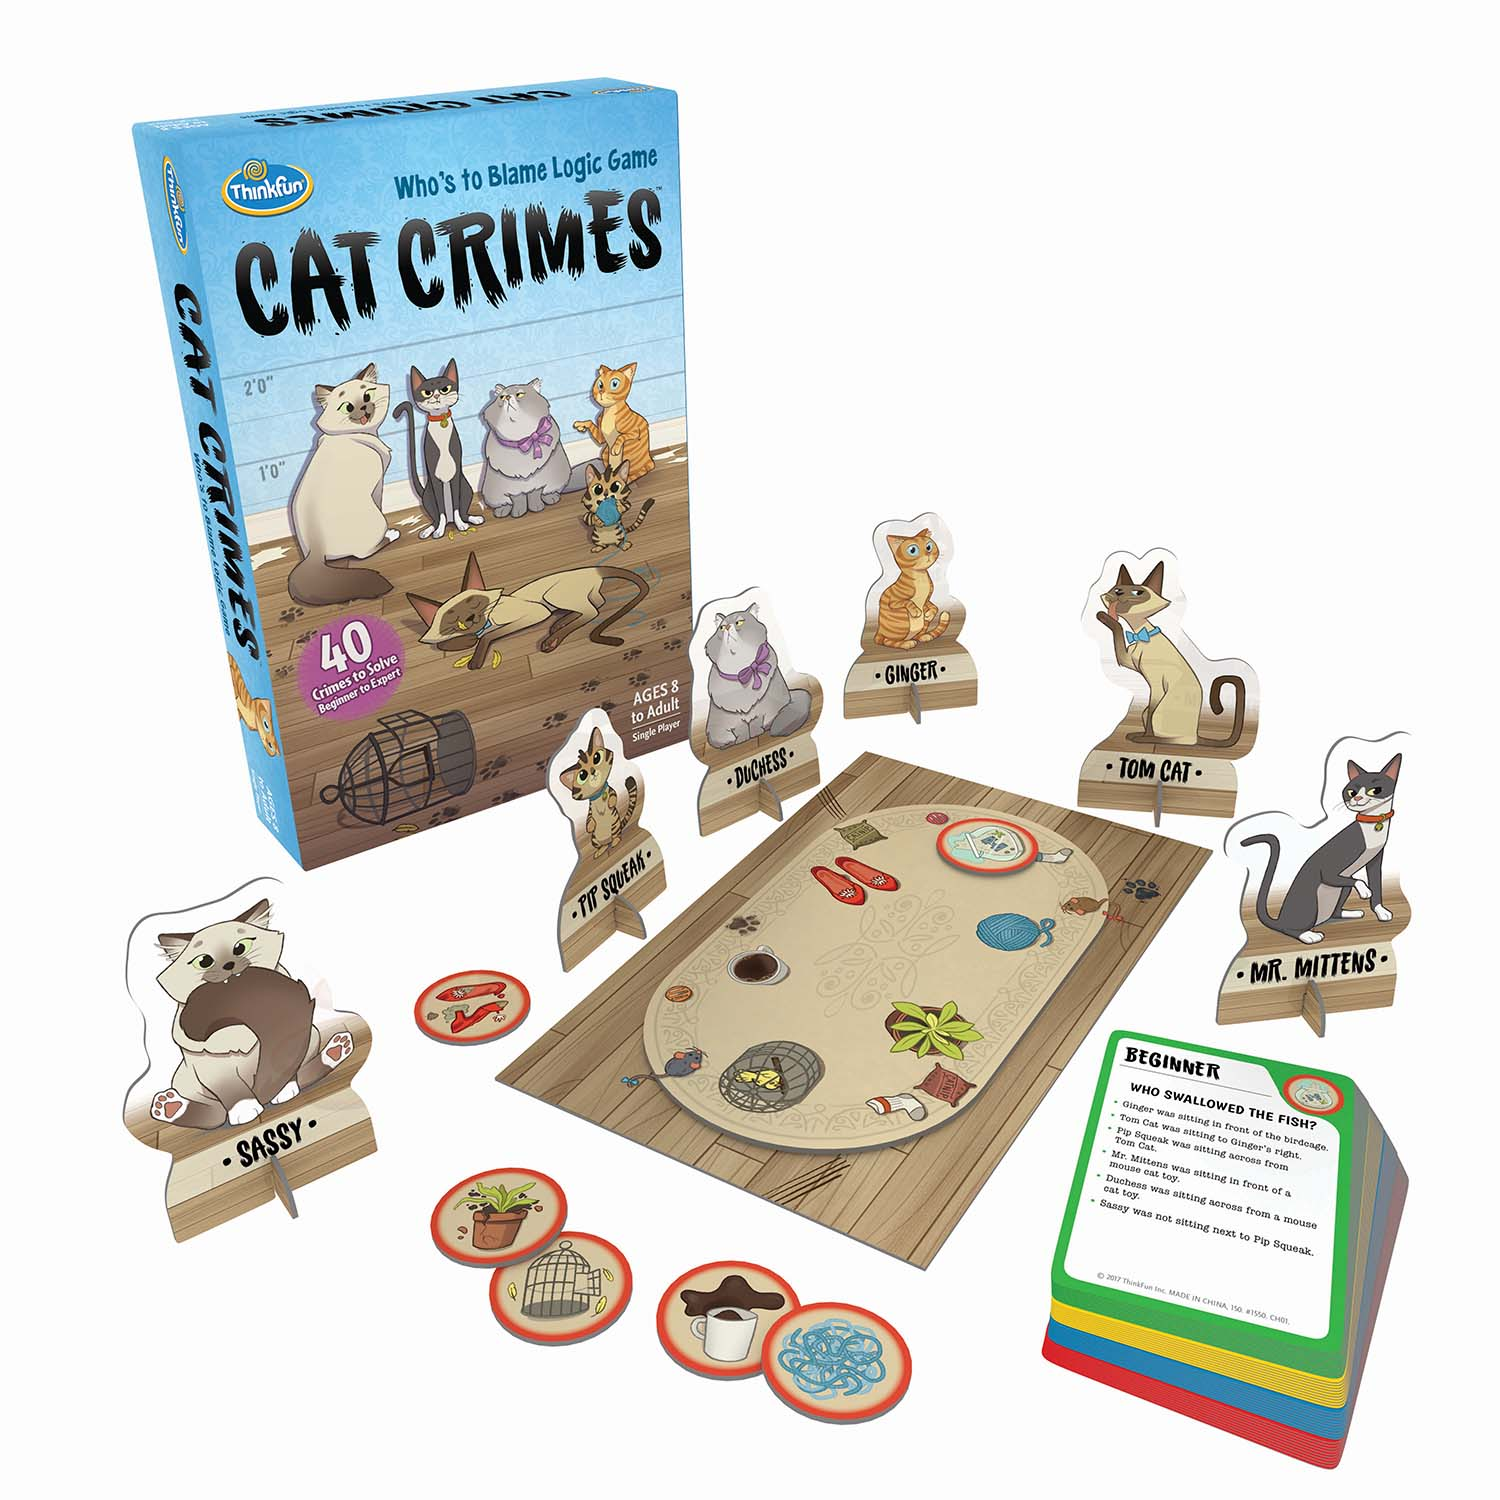 Thanksgiving Break? How about a Family Game Night?